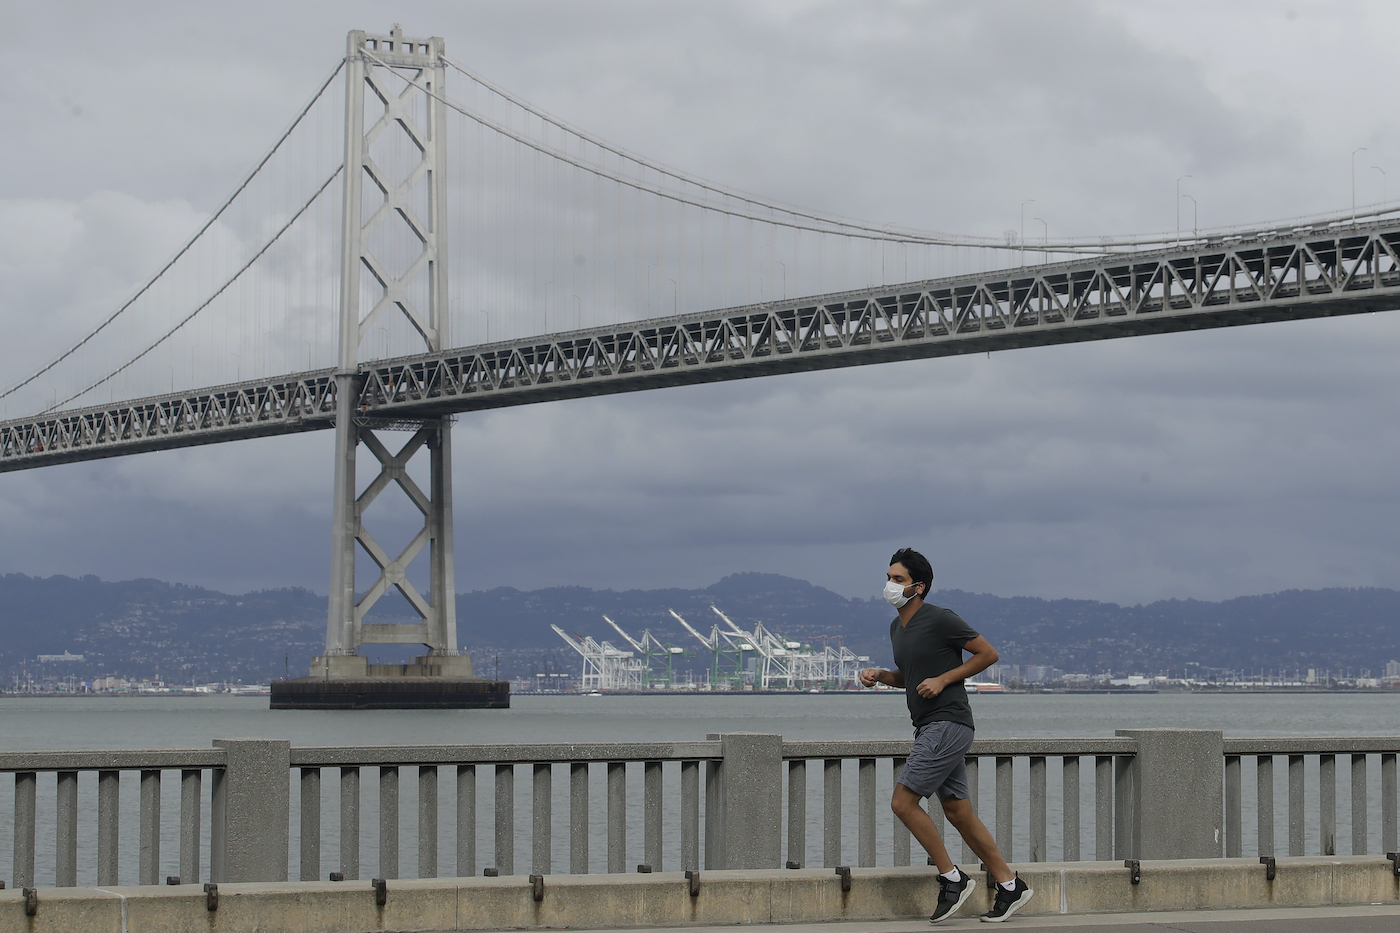 a man jogging on a sidewalk in front of a bay and bridge.